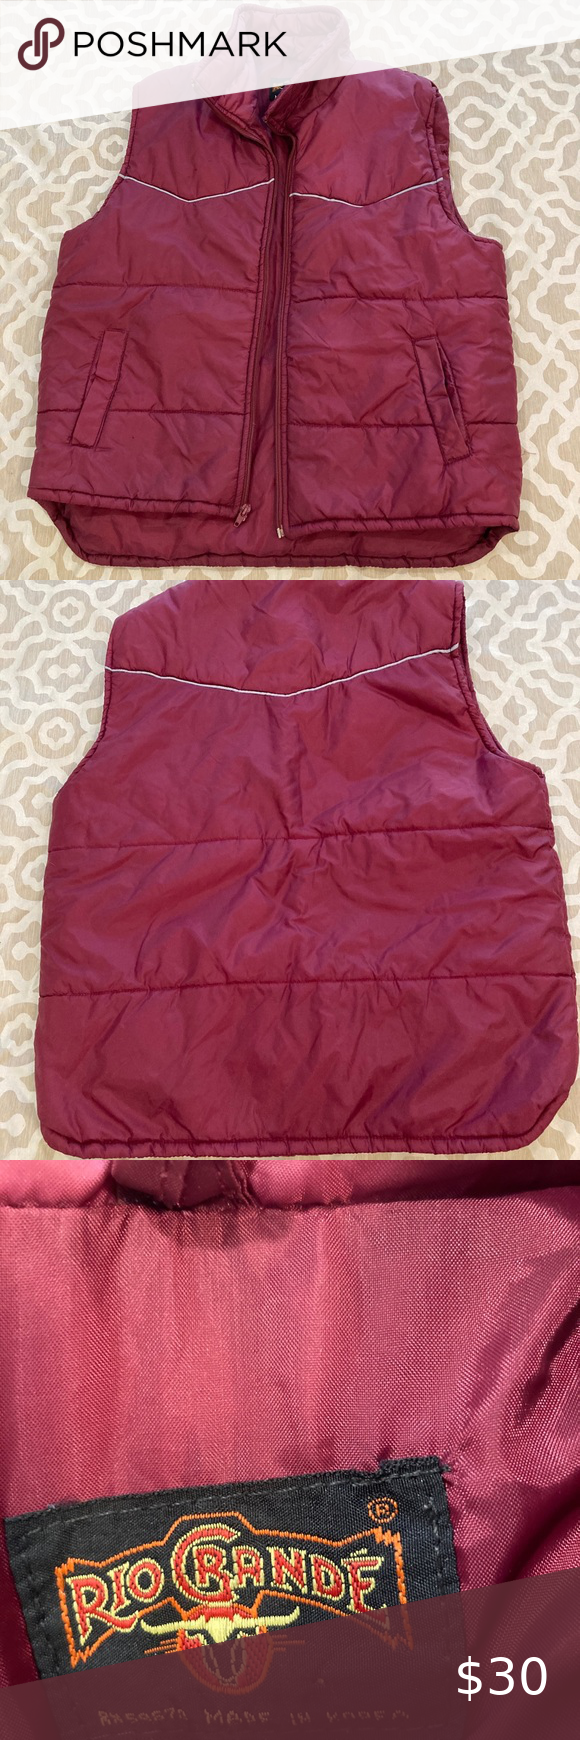 Rio Grande Puffy Vest M Great Winter Vest by Rio Grande M no stains, pulls or other defects. RioGrande Jackets & Coats Vests